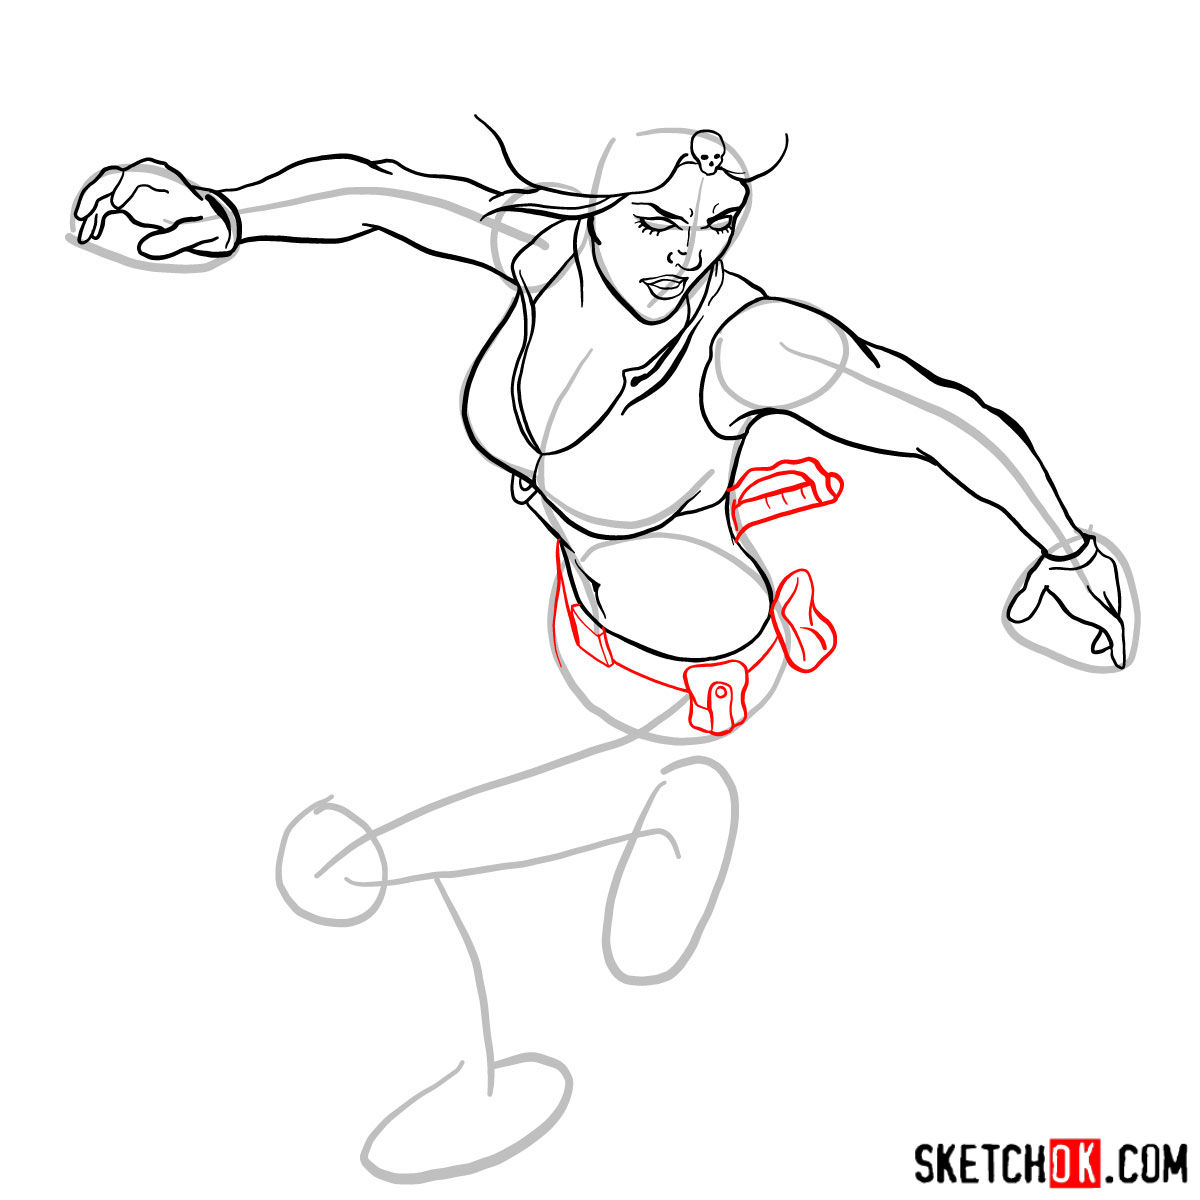 How to draw Mystique (Raven Darkhölme) from Marvel X-Men comics - step 11